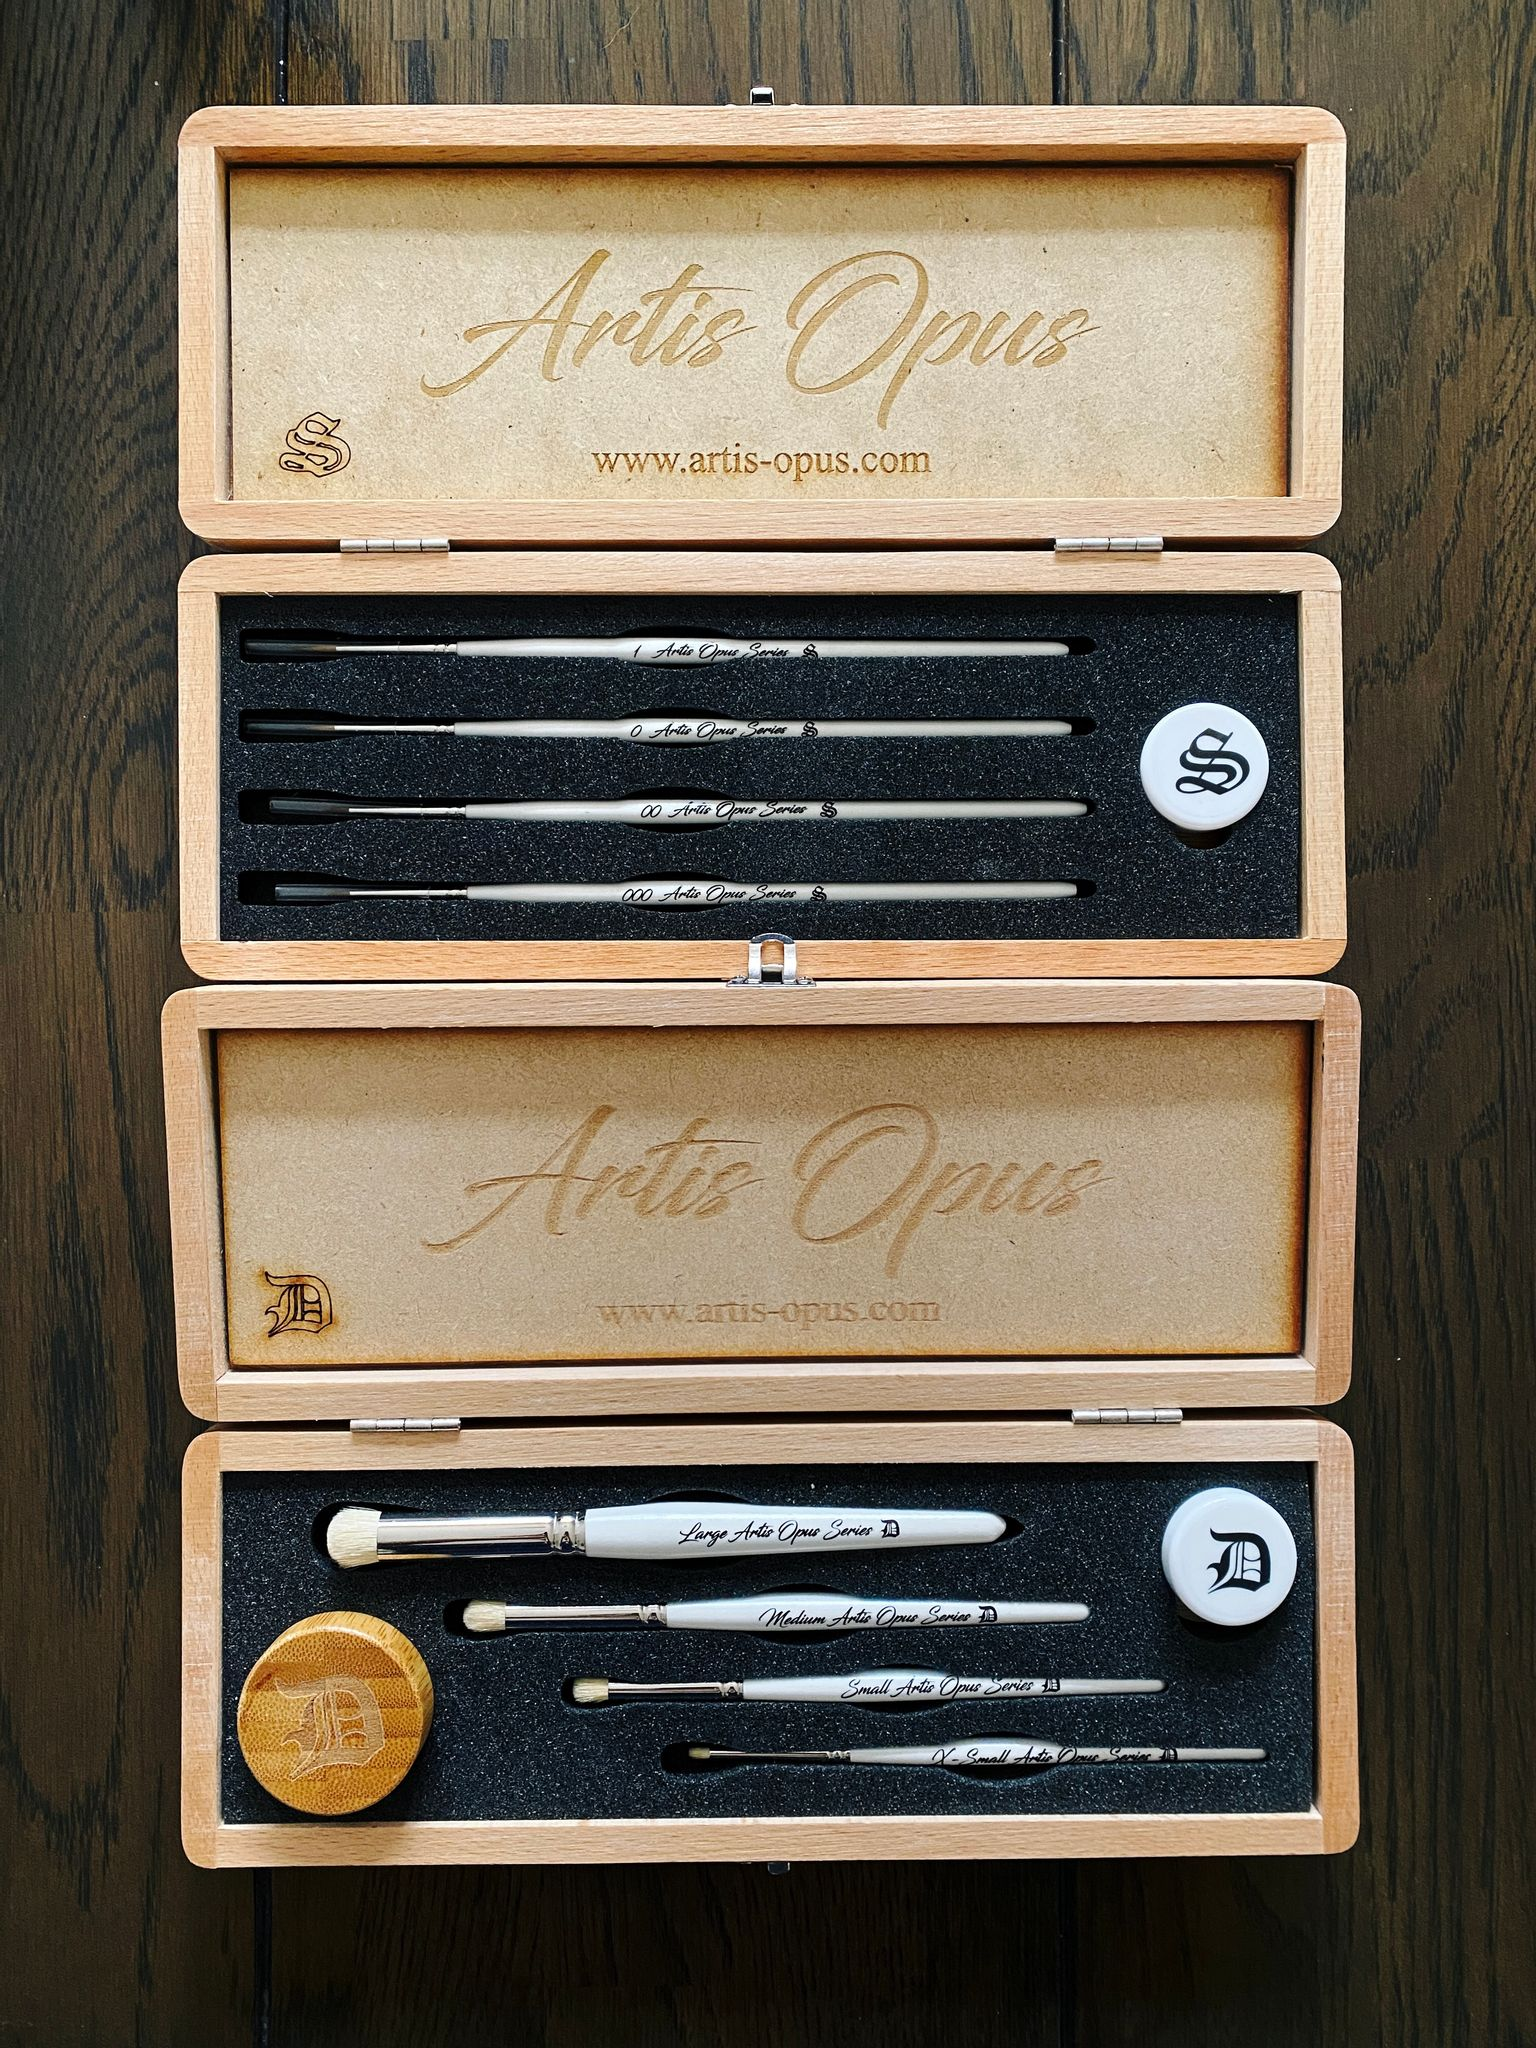 A photo of two wooden boxes with fancy Artis Opus brushes in them. One is a set of four regular brushes, the other is set of four drybrushes.